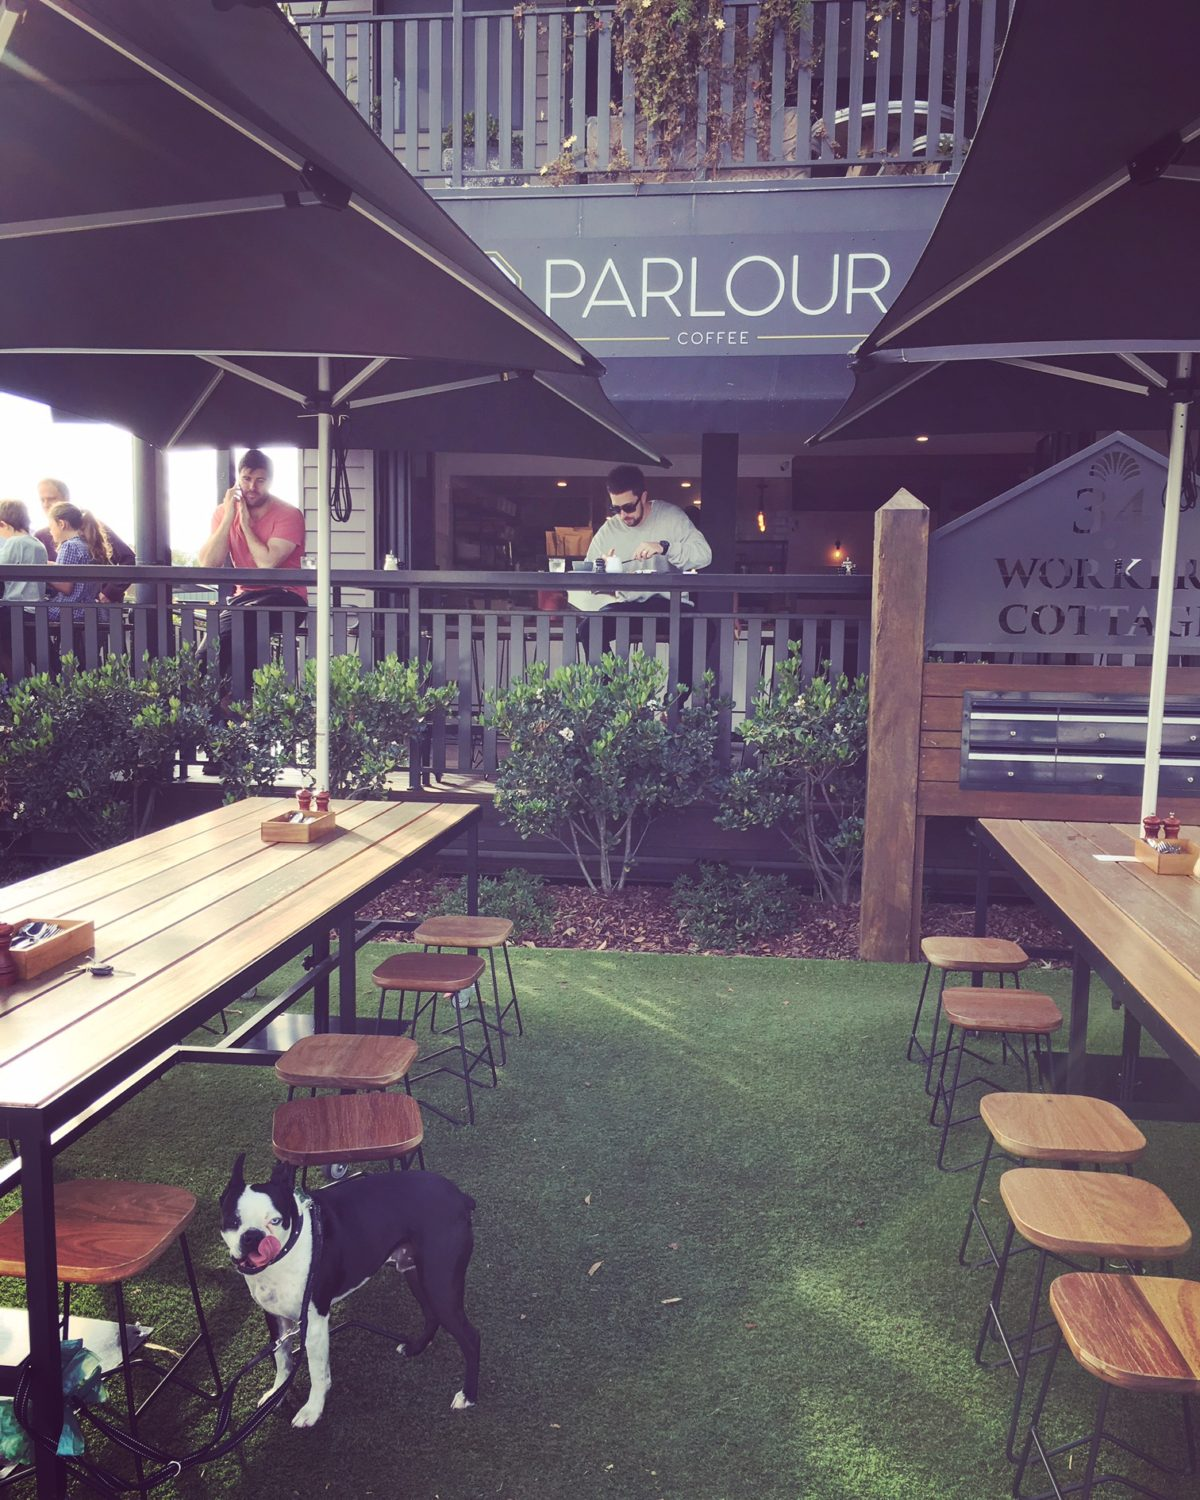 Brain's Pet Friendly Cafe Discovery Mission – Parlour, West Burleigh